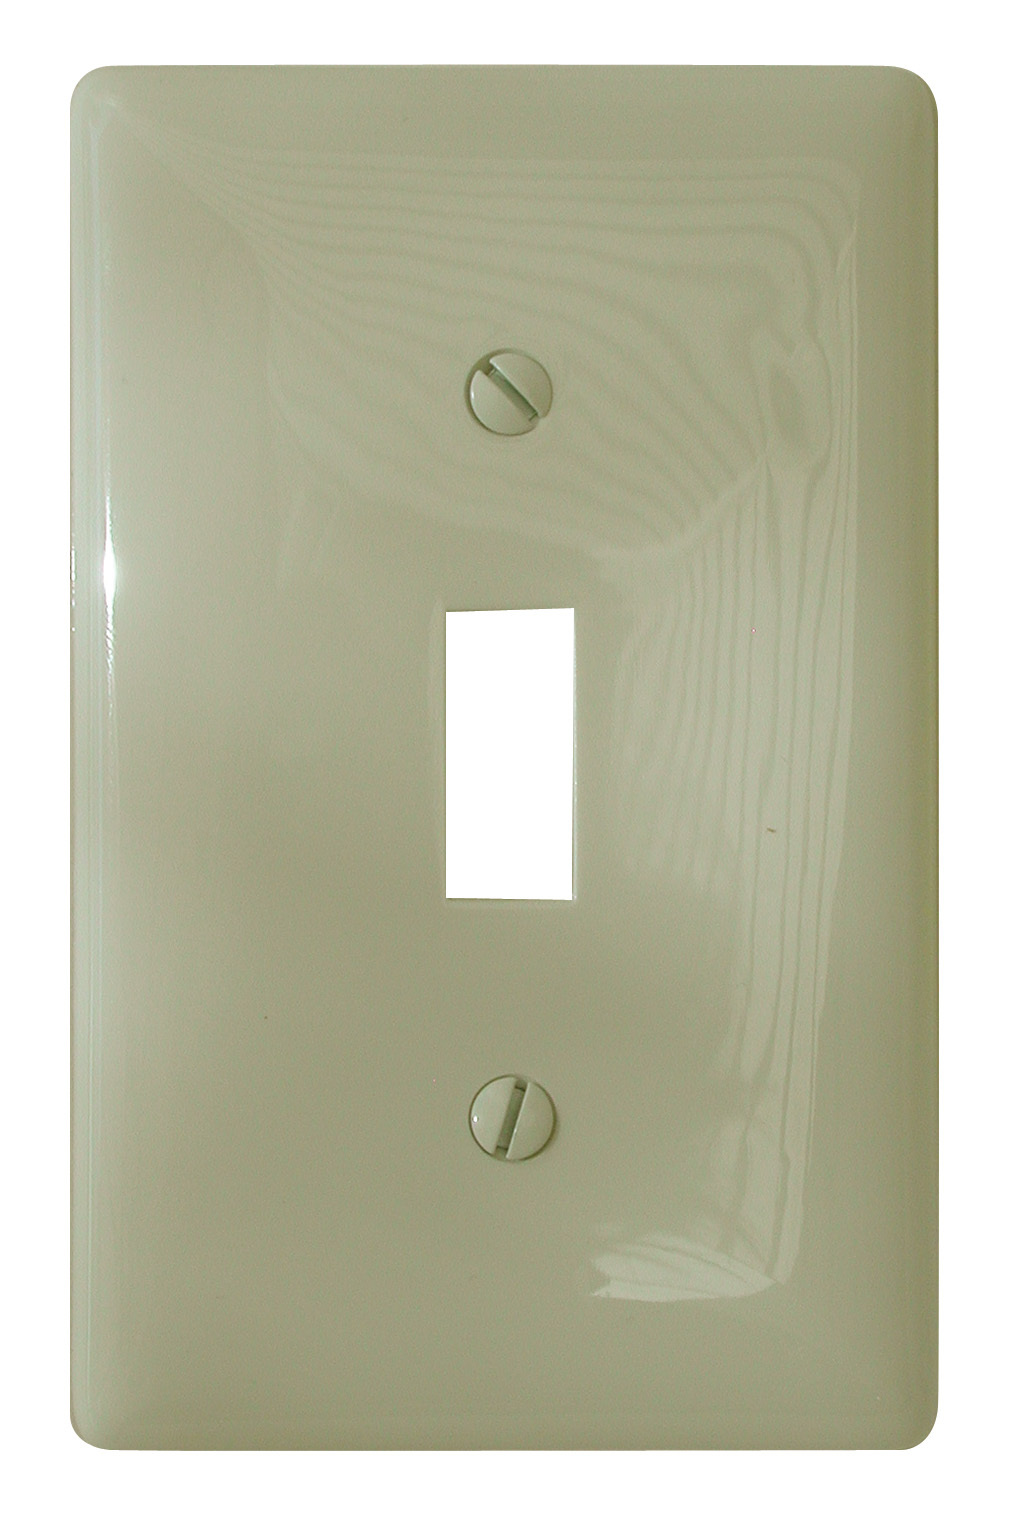 Toggle Switch Cover - Ivory 4134V